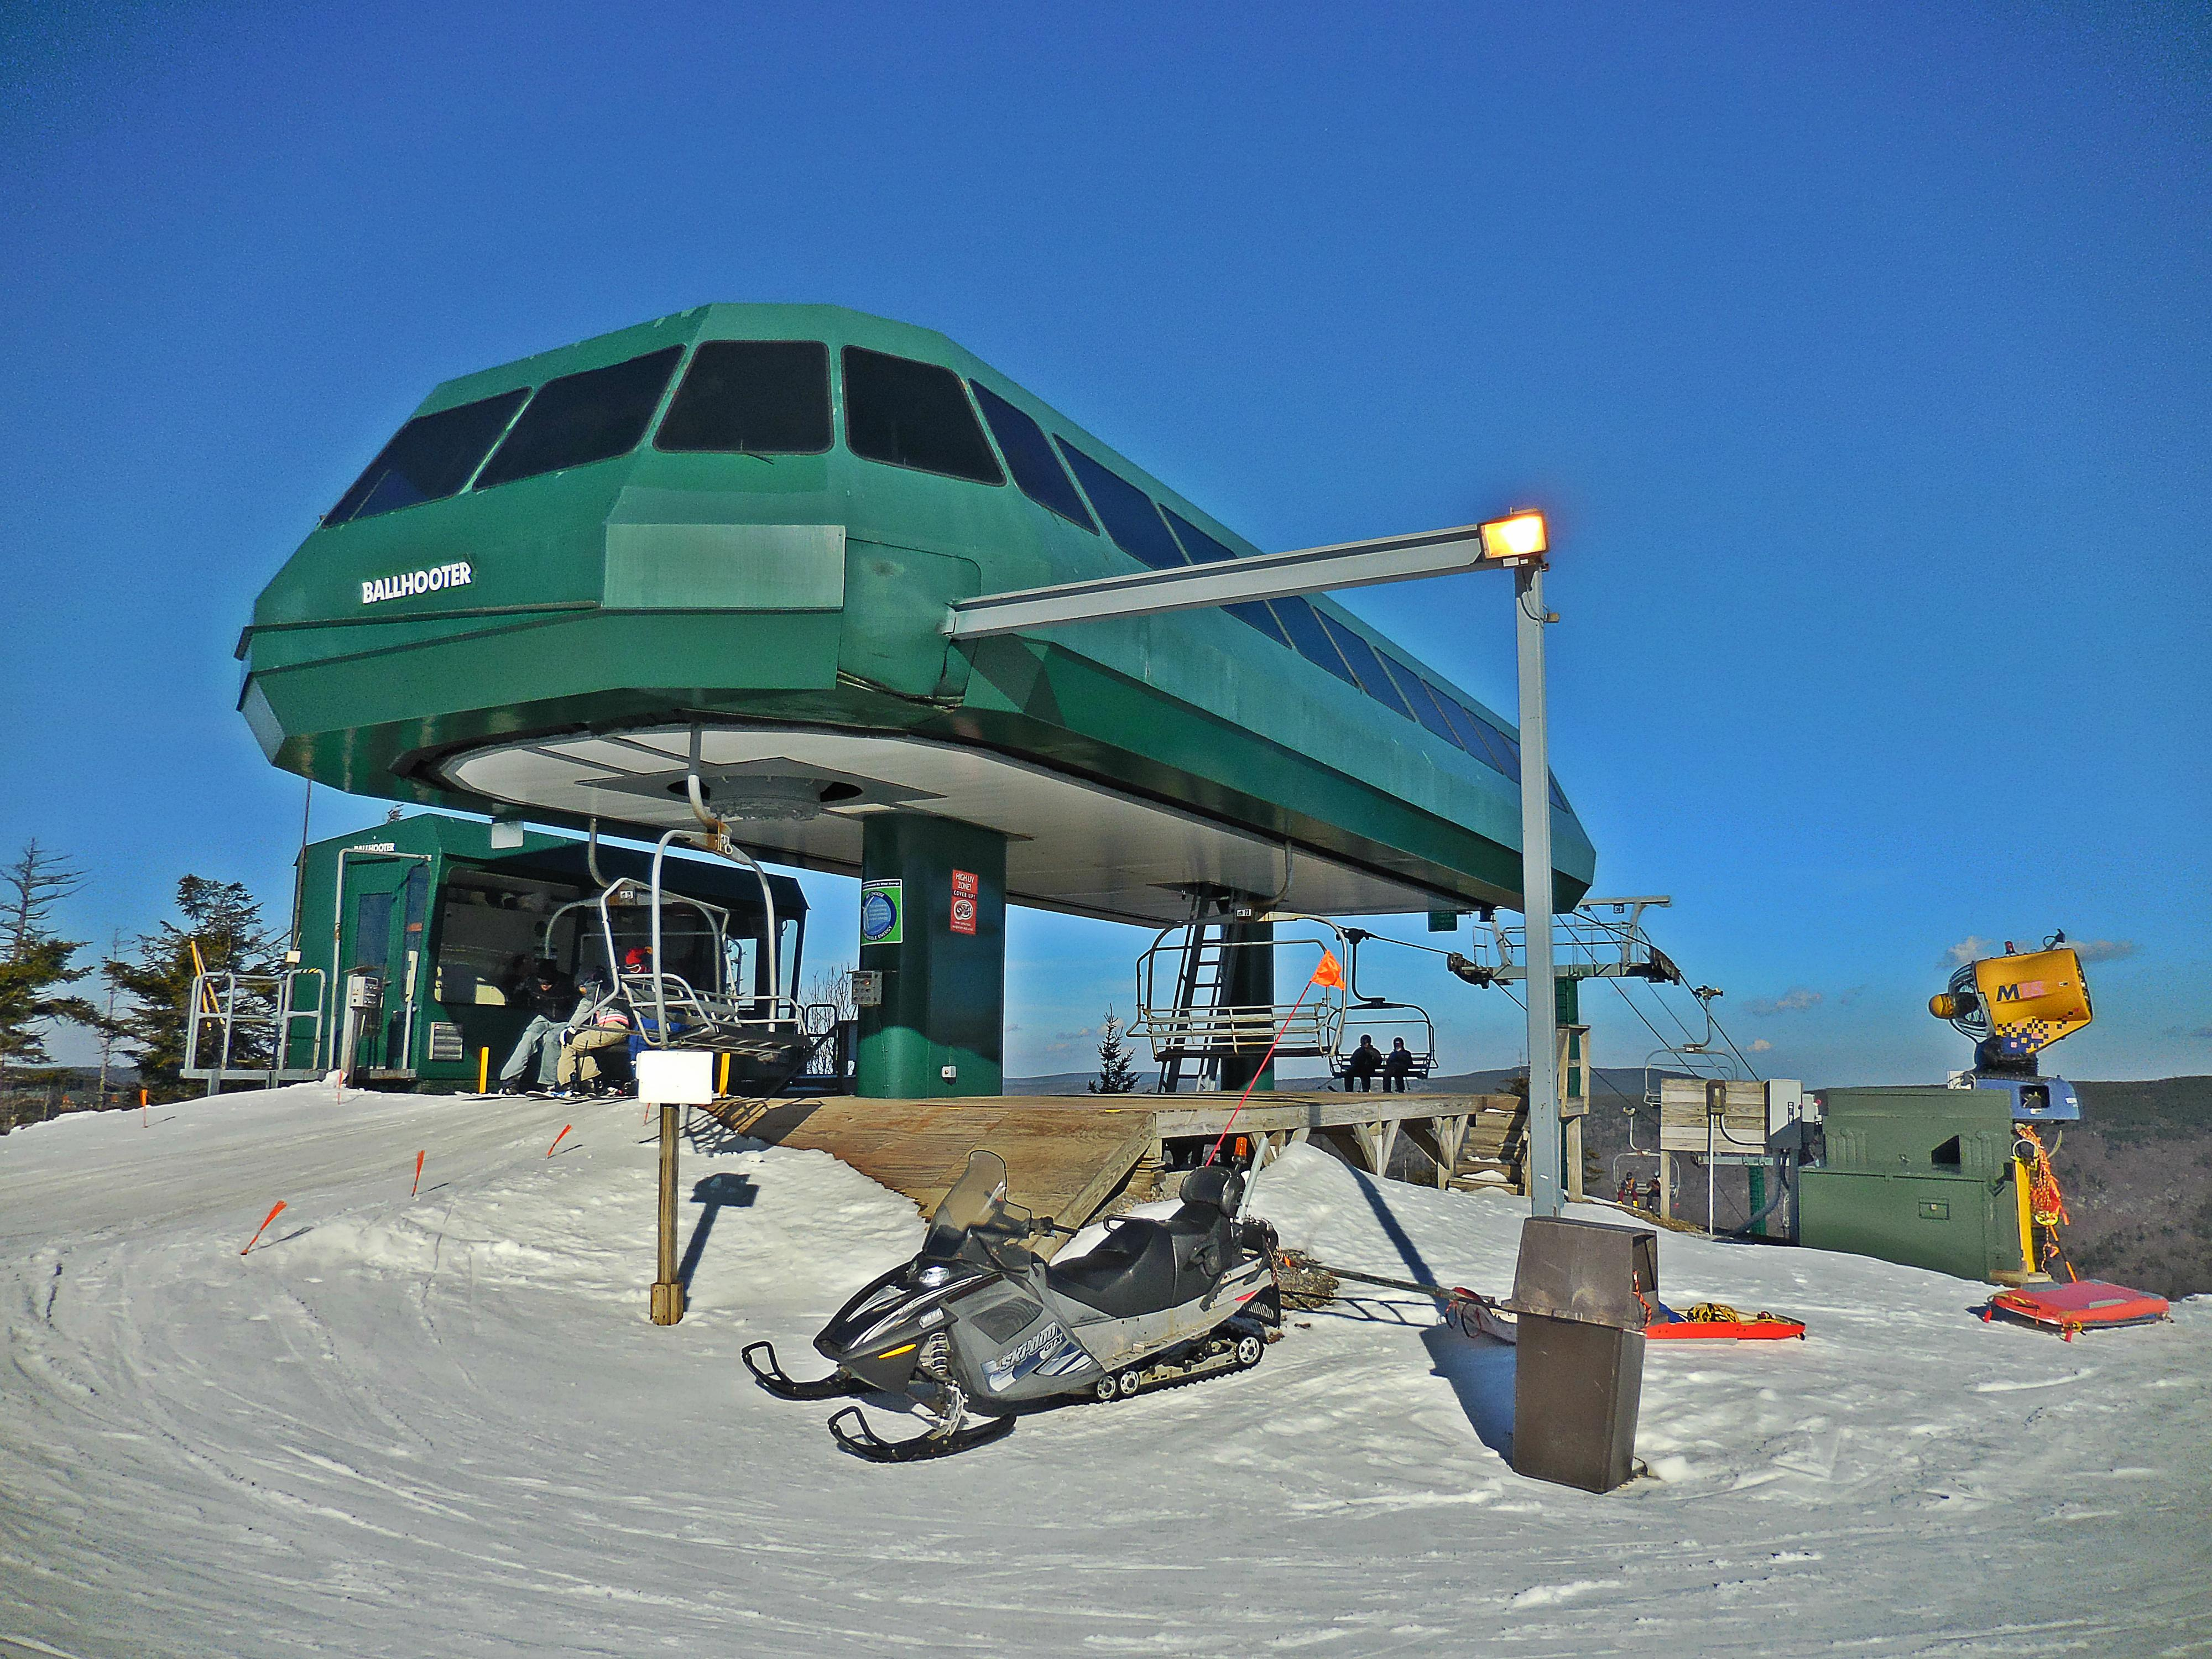 The Ballhooter high-speed chairlift is just outside out back door!